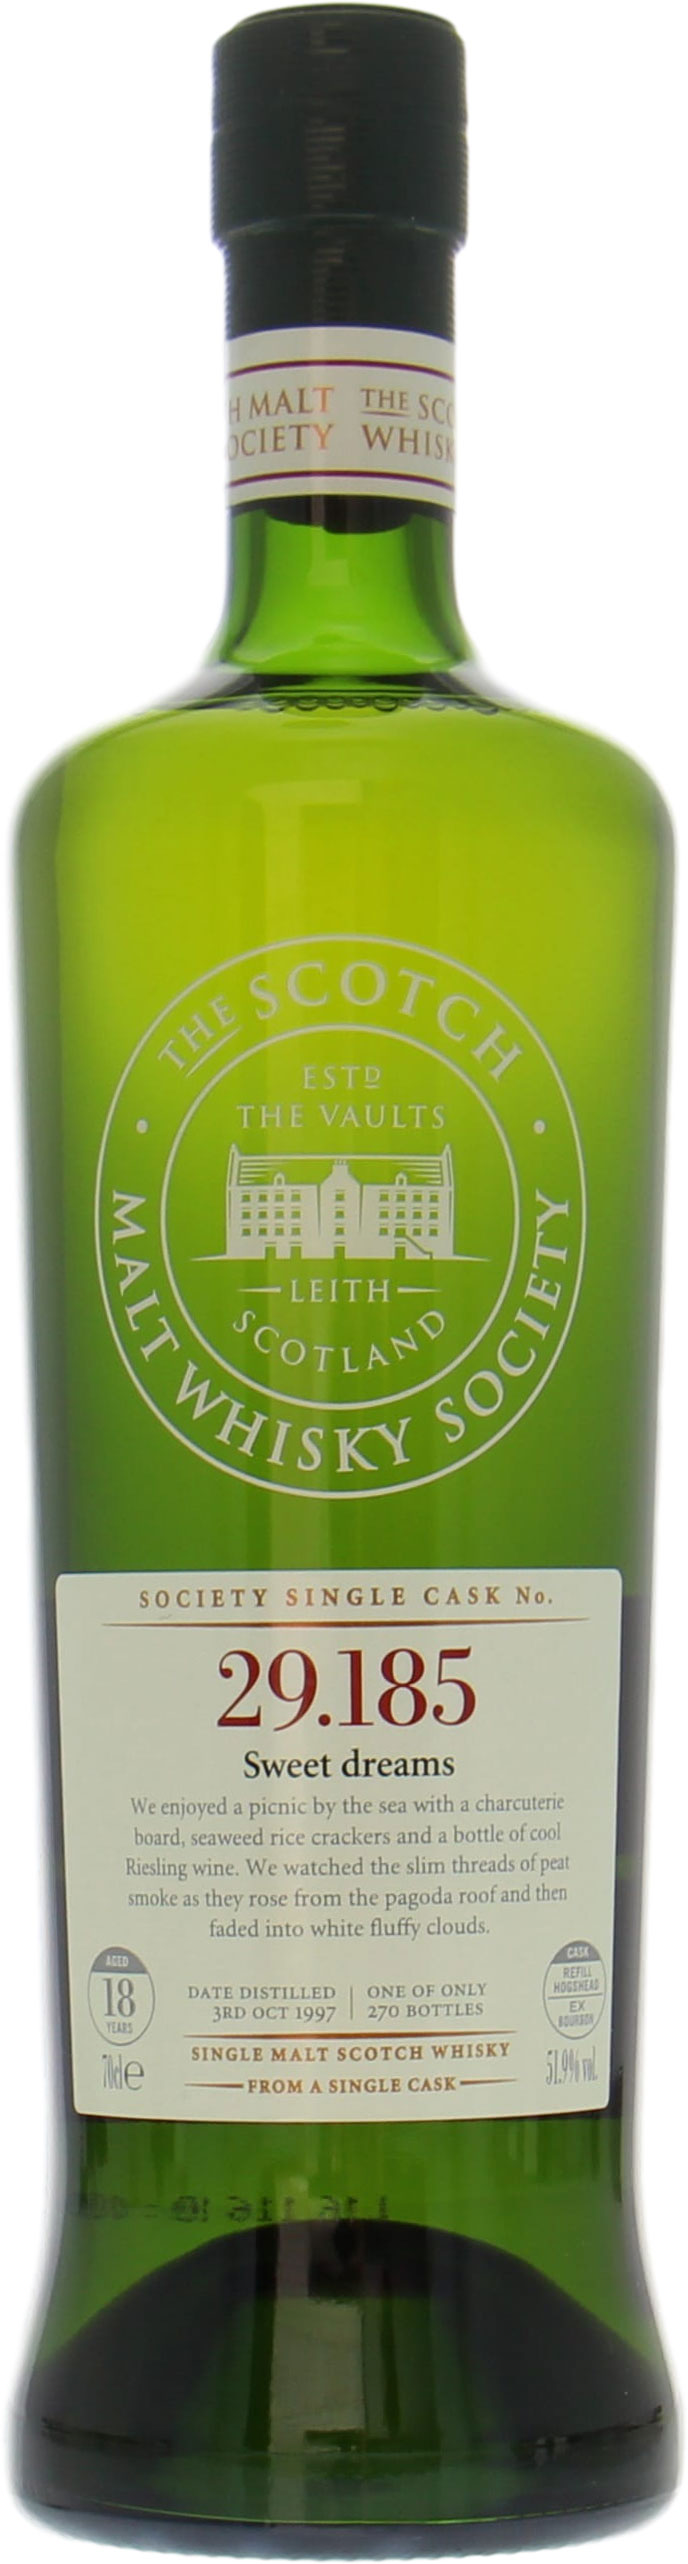 Laphroaig - 18 Years Old SMWS 29.185 Sweet dreams 51.9% 1997